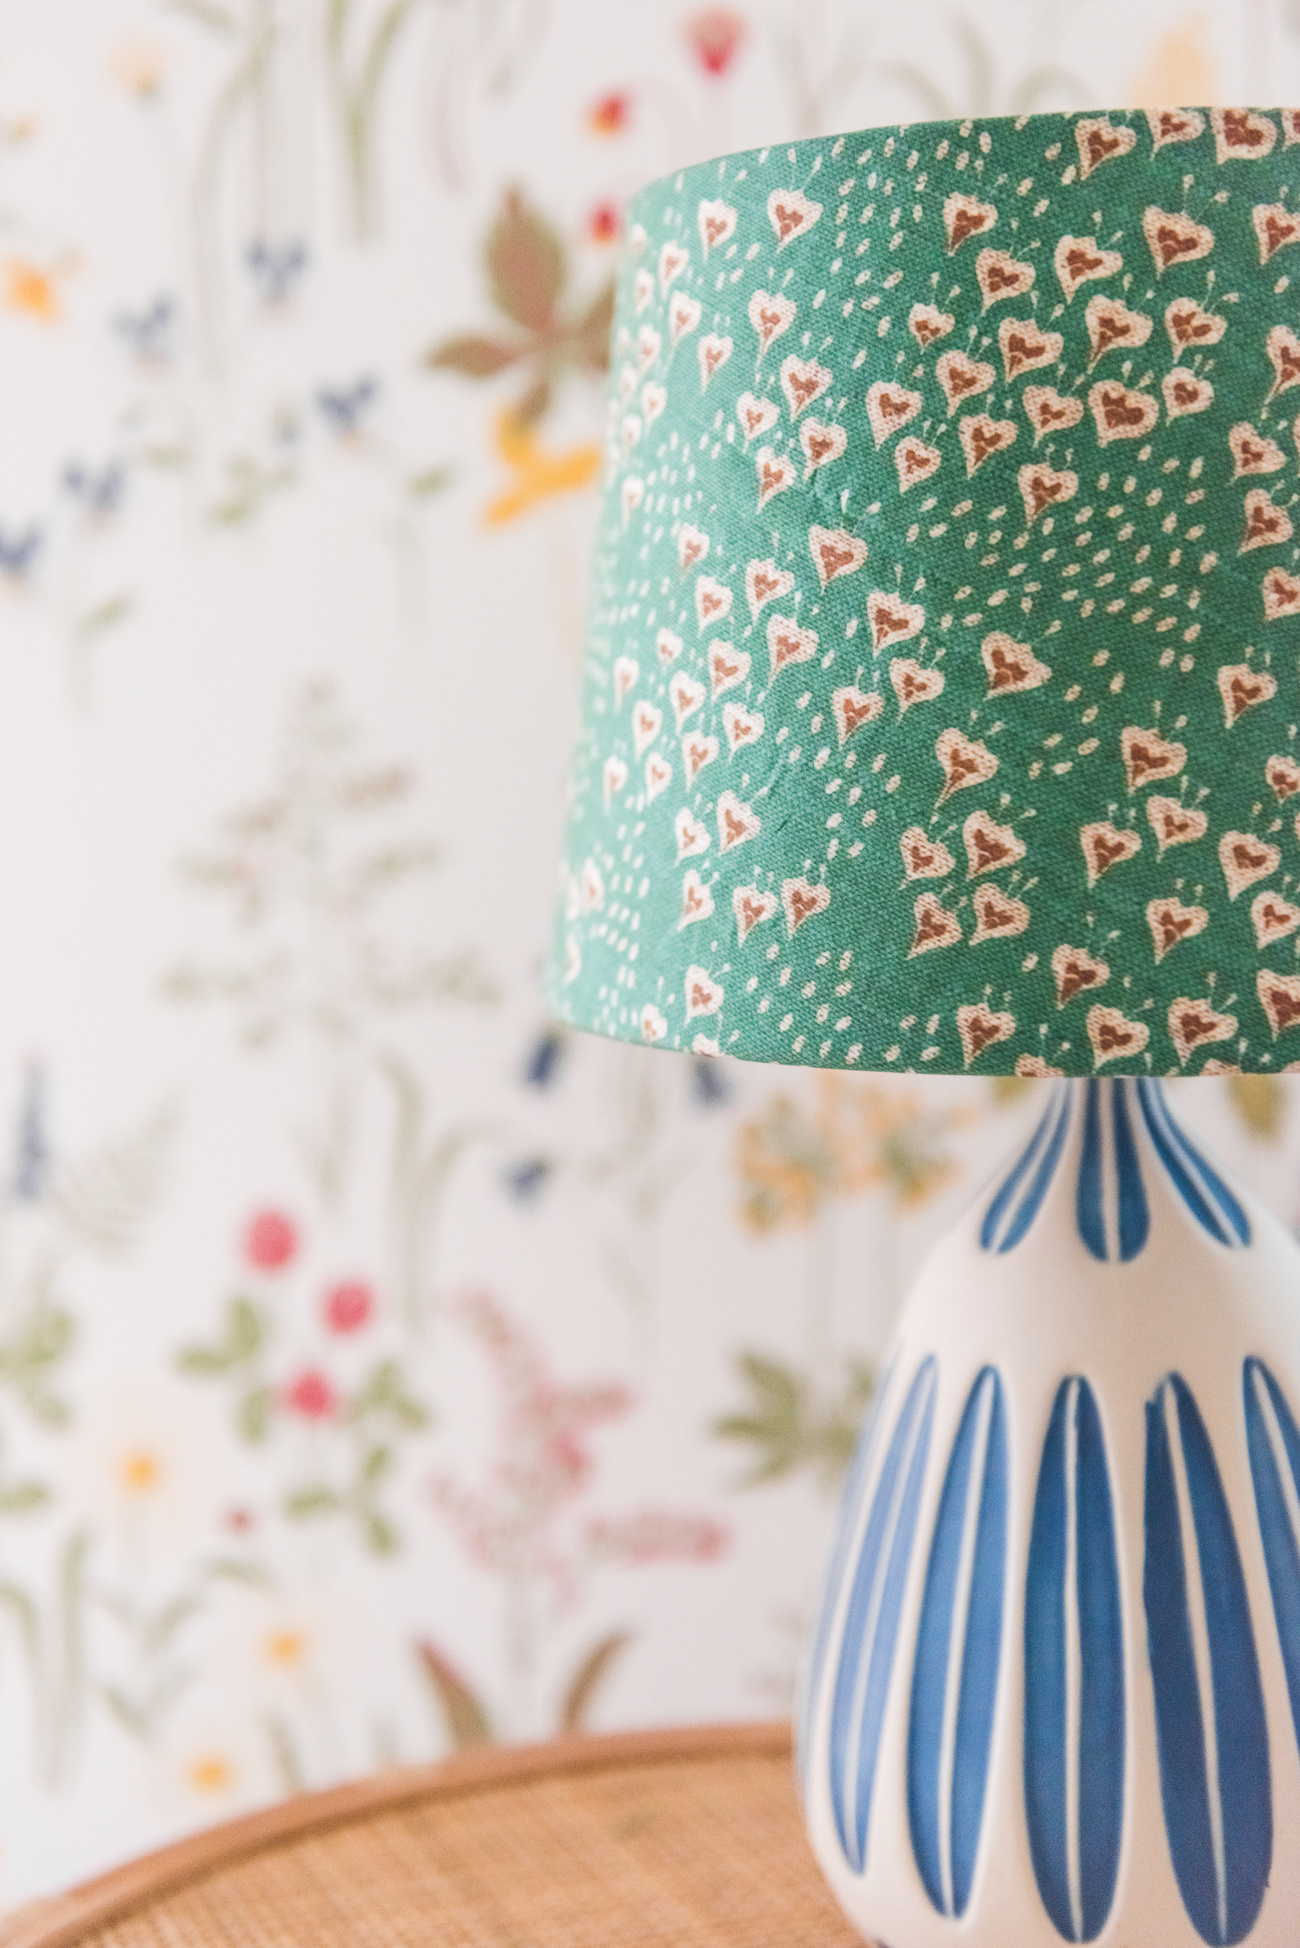 DIY lampshade with Spoonflower fabric